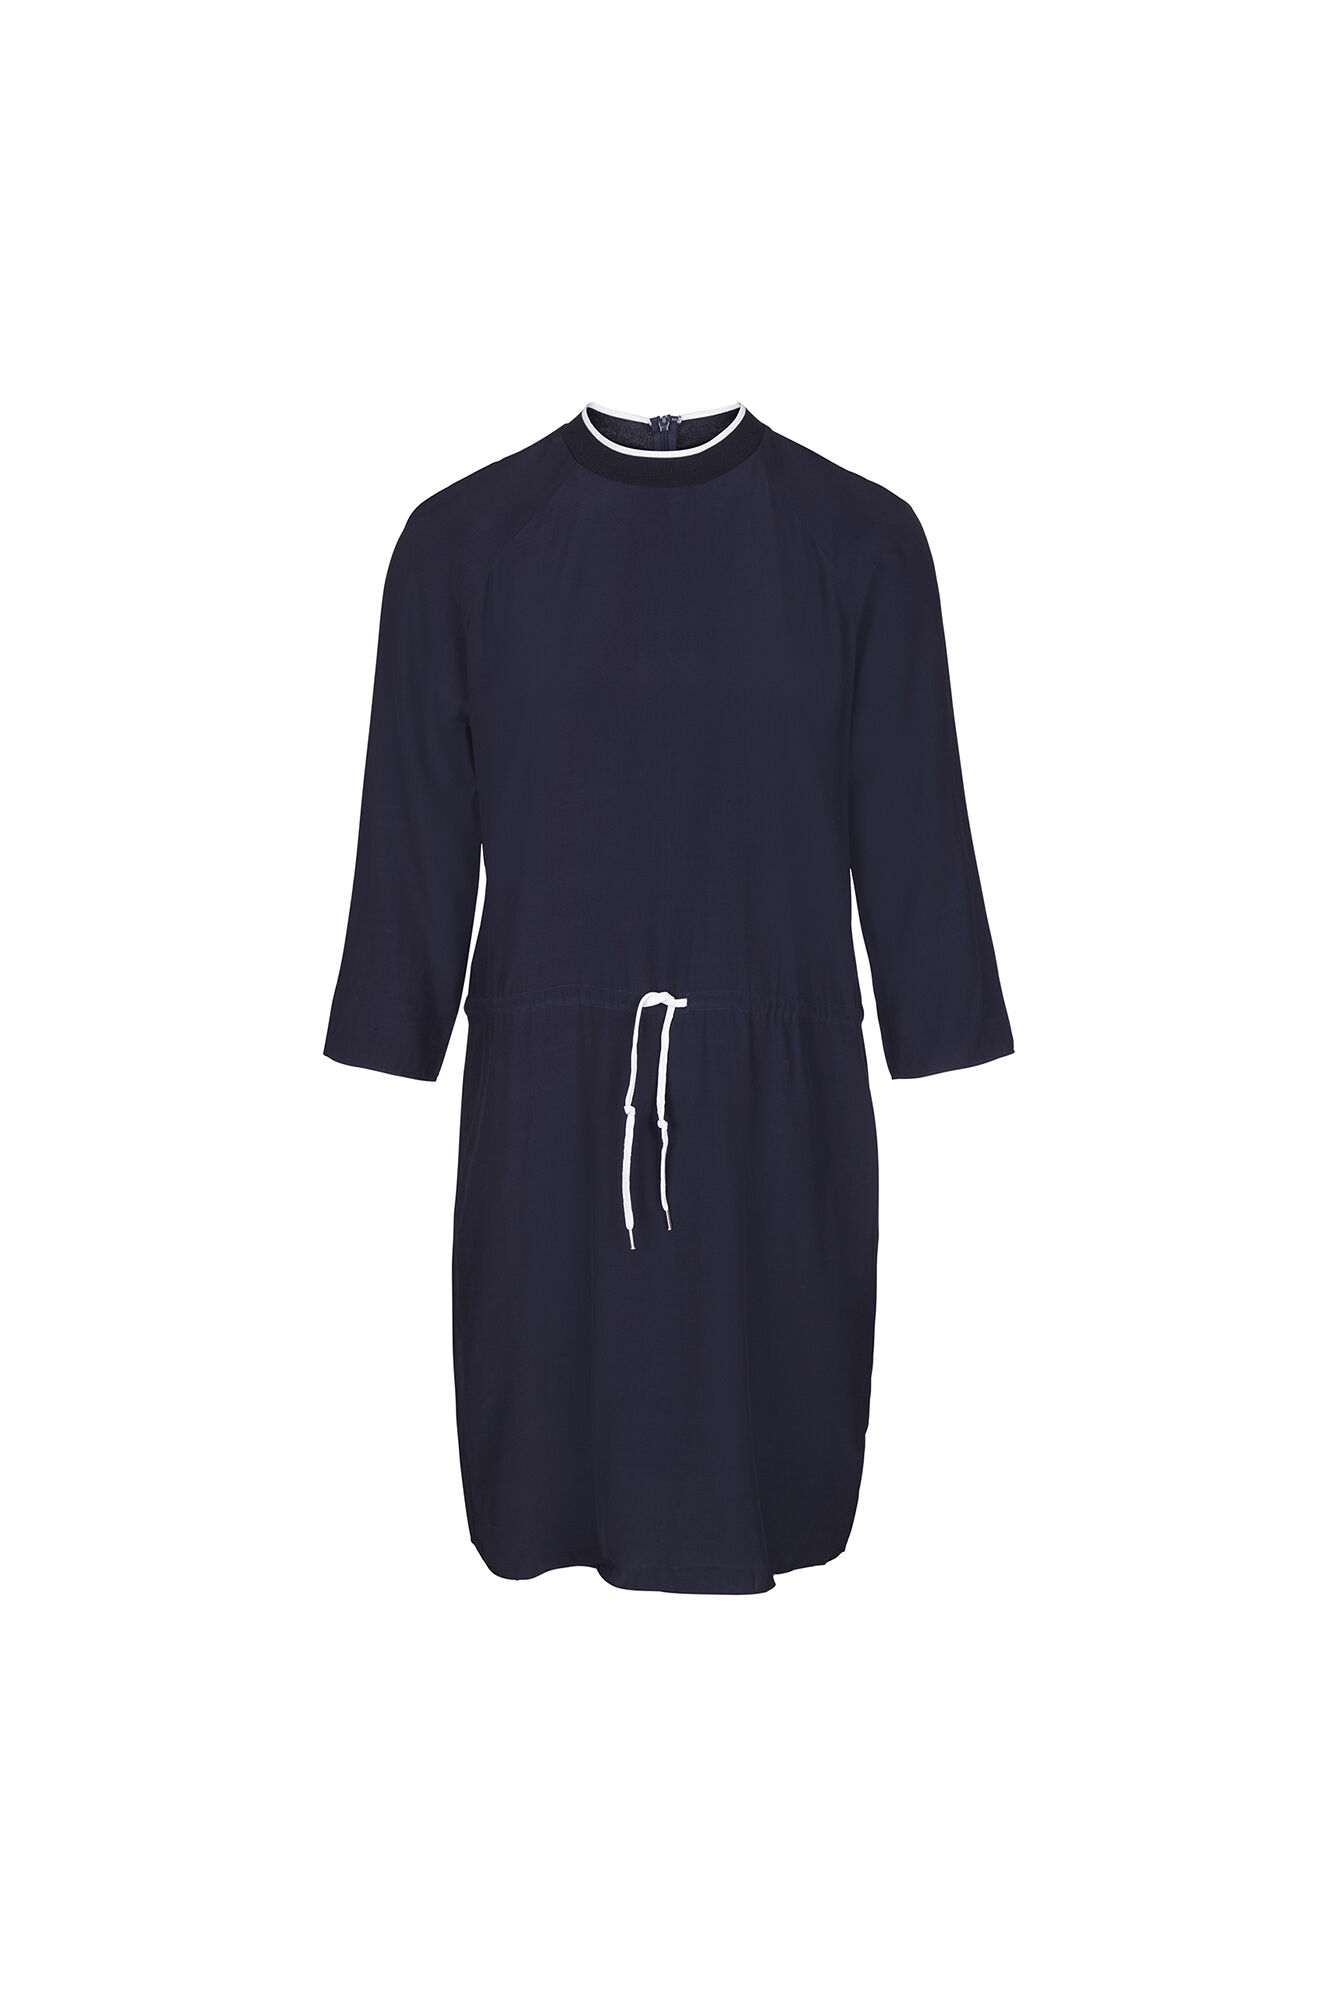 TIRE 3/4 CONTRAST DRESS 6431, NEW NAVY